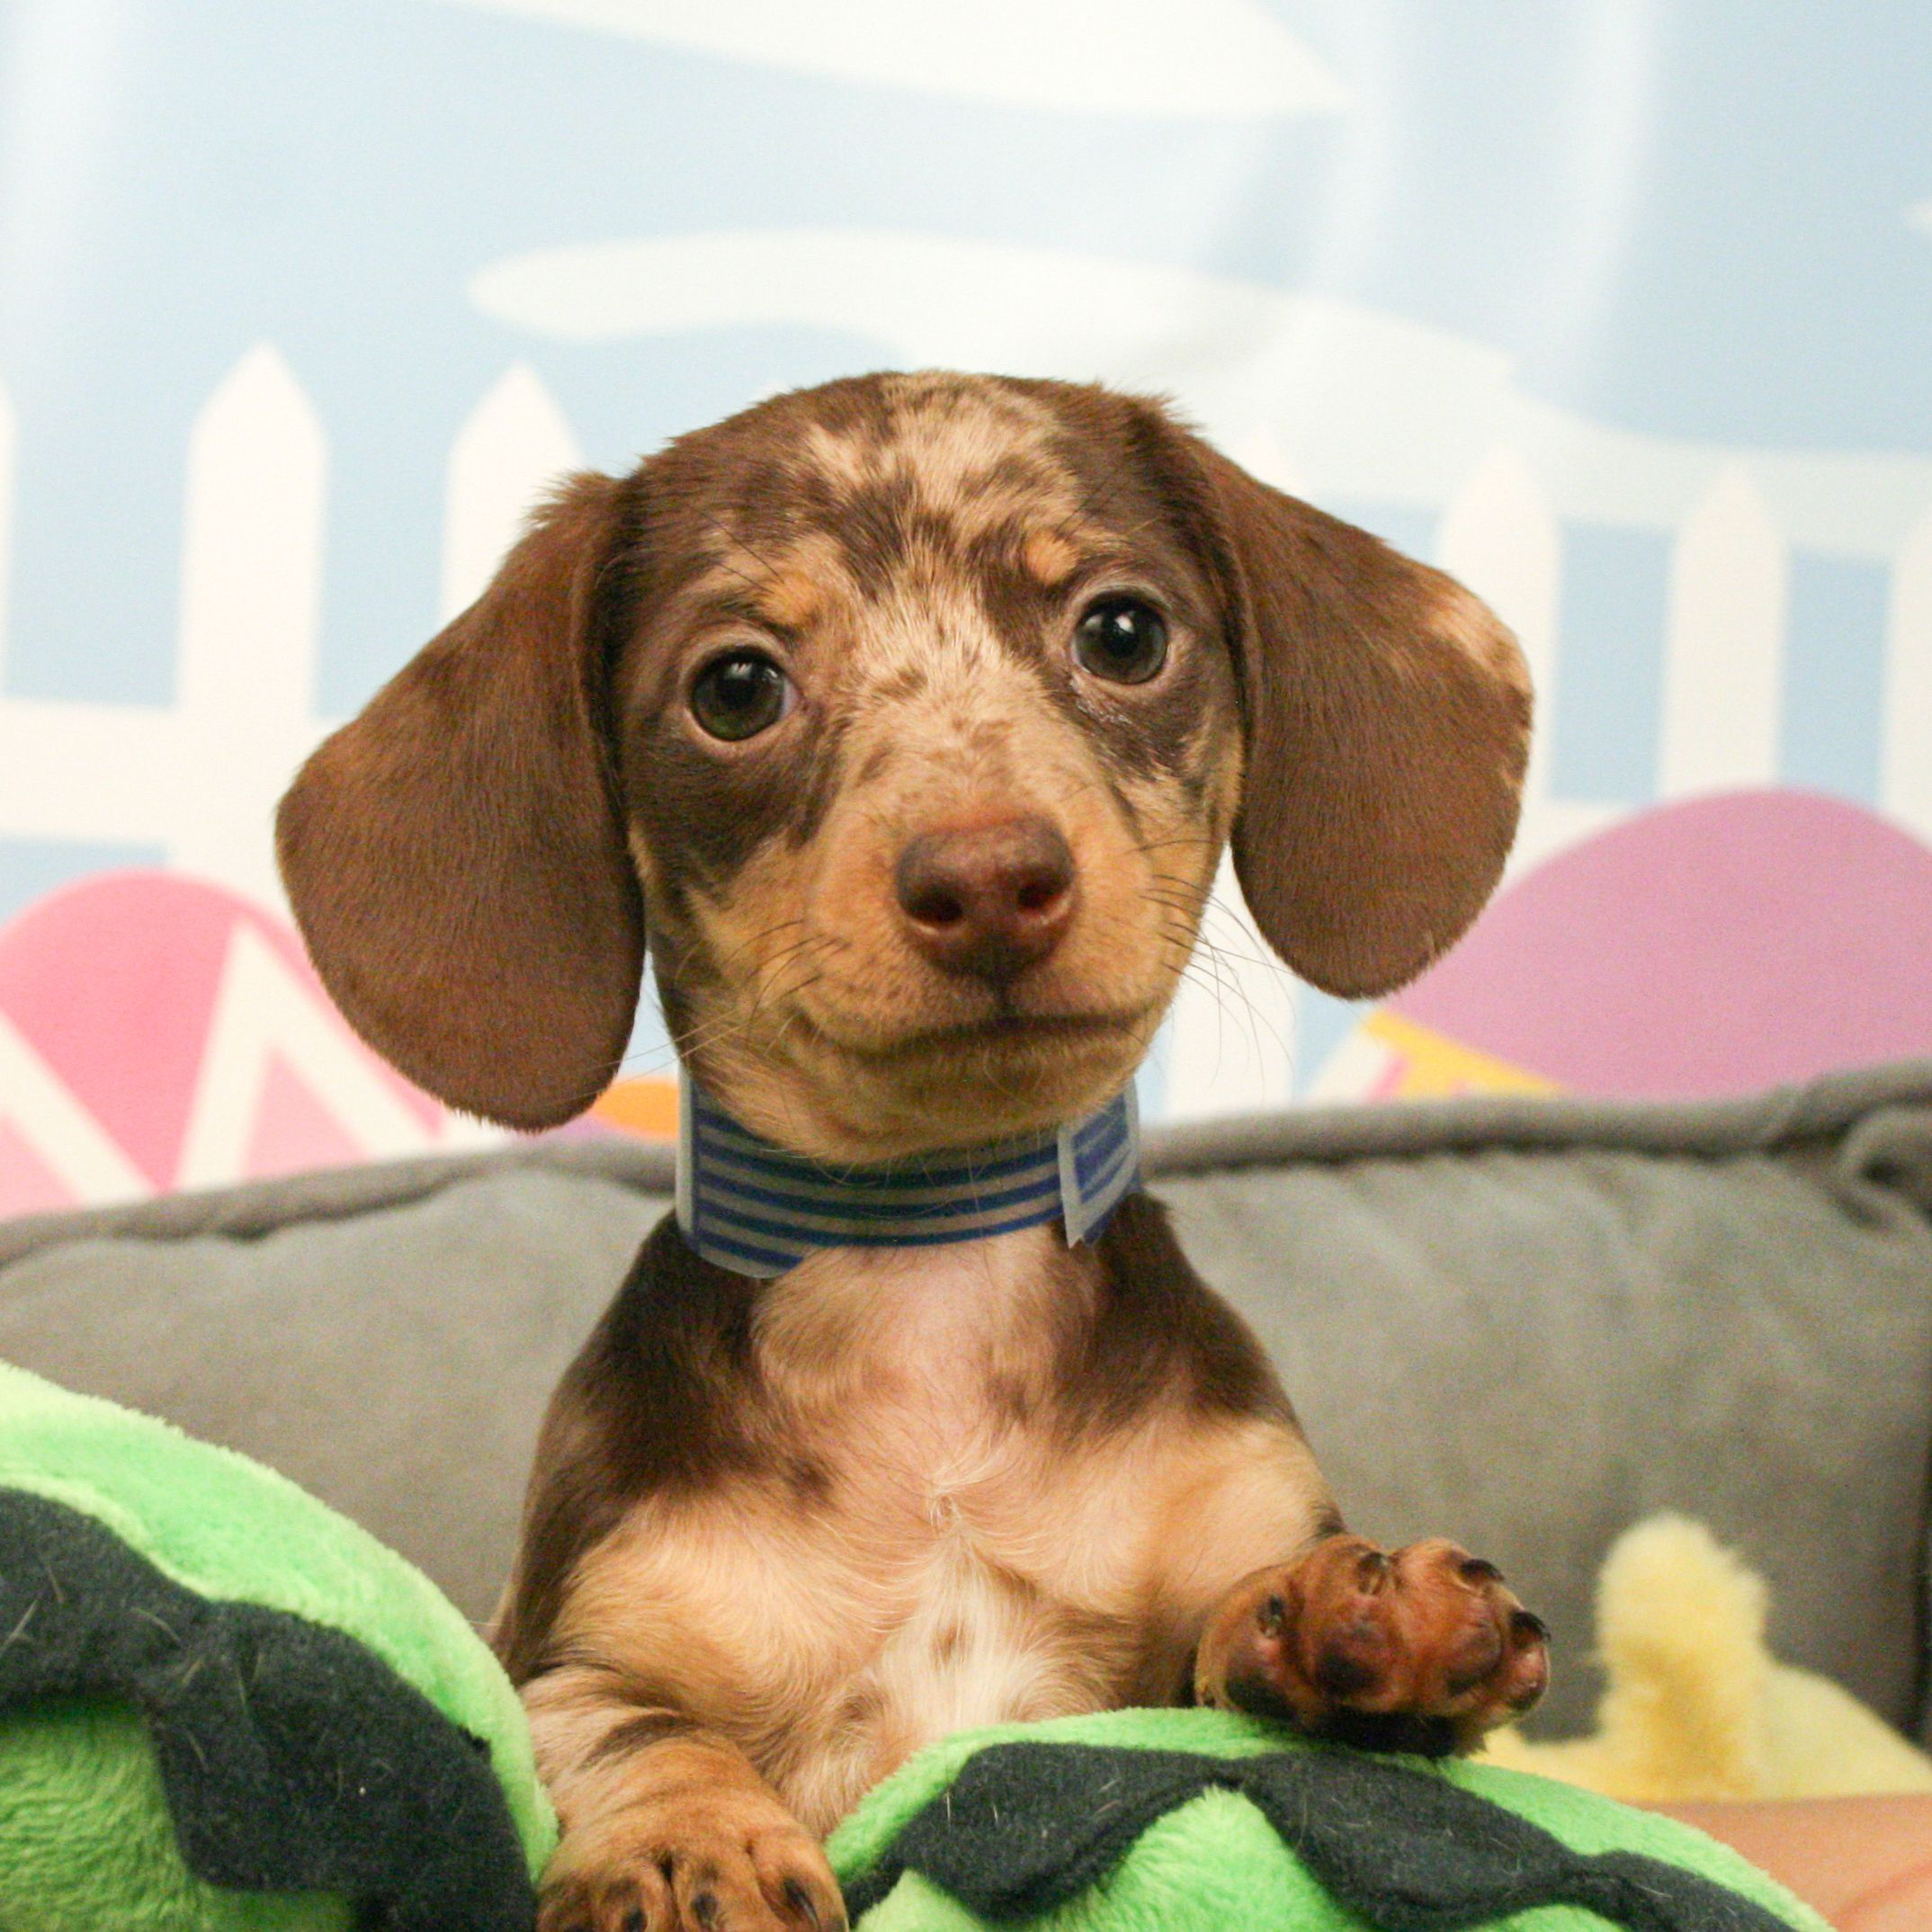 Dachshund Puppies Are So Iconic Dachshund Puppies For Sale